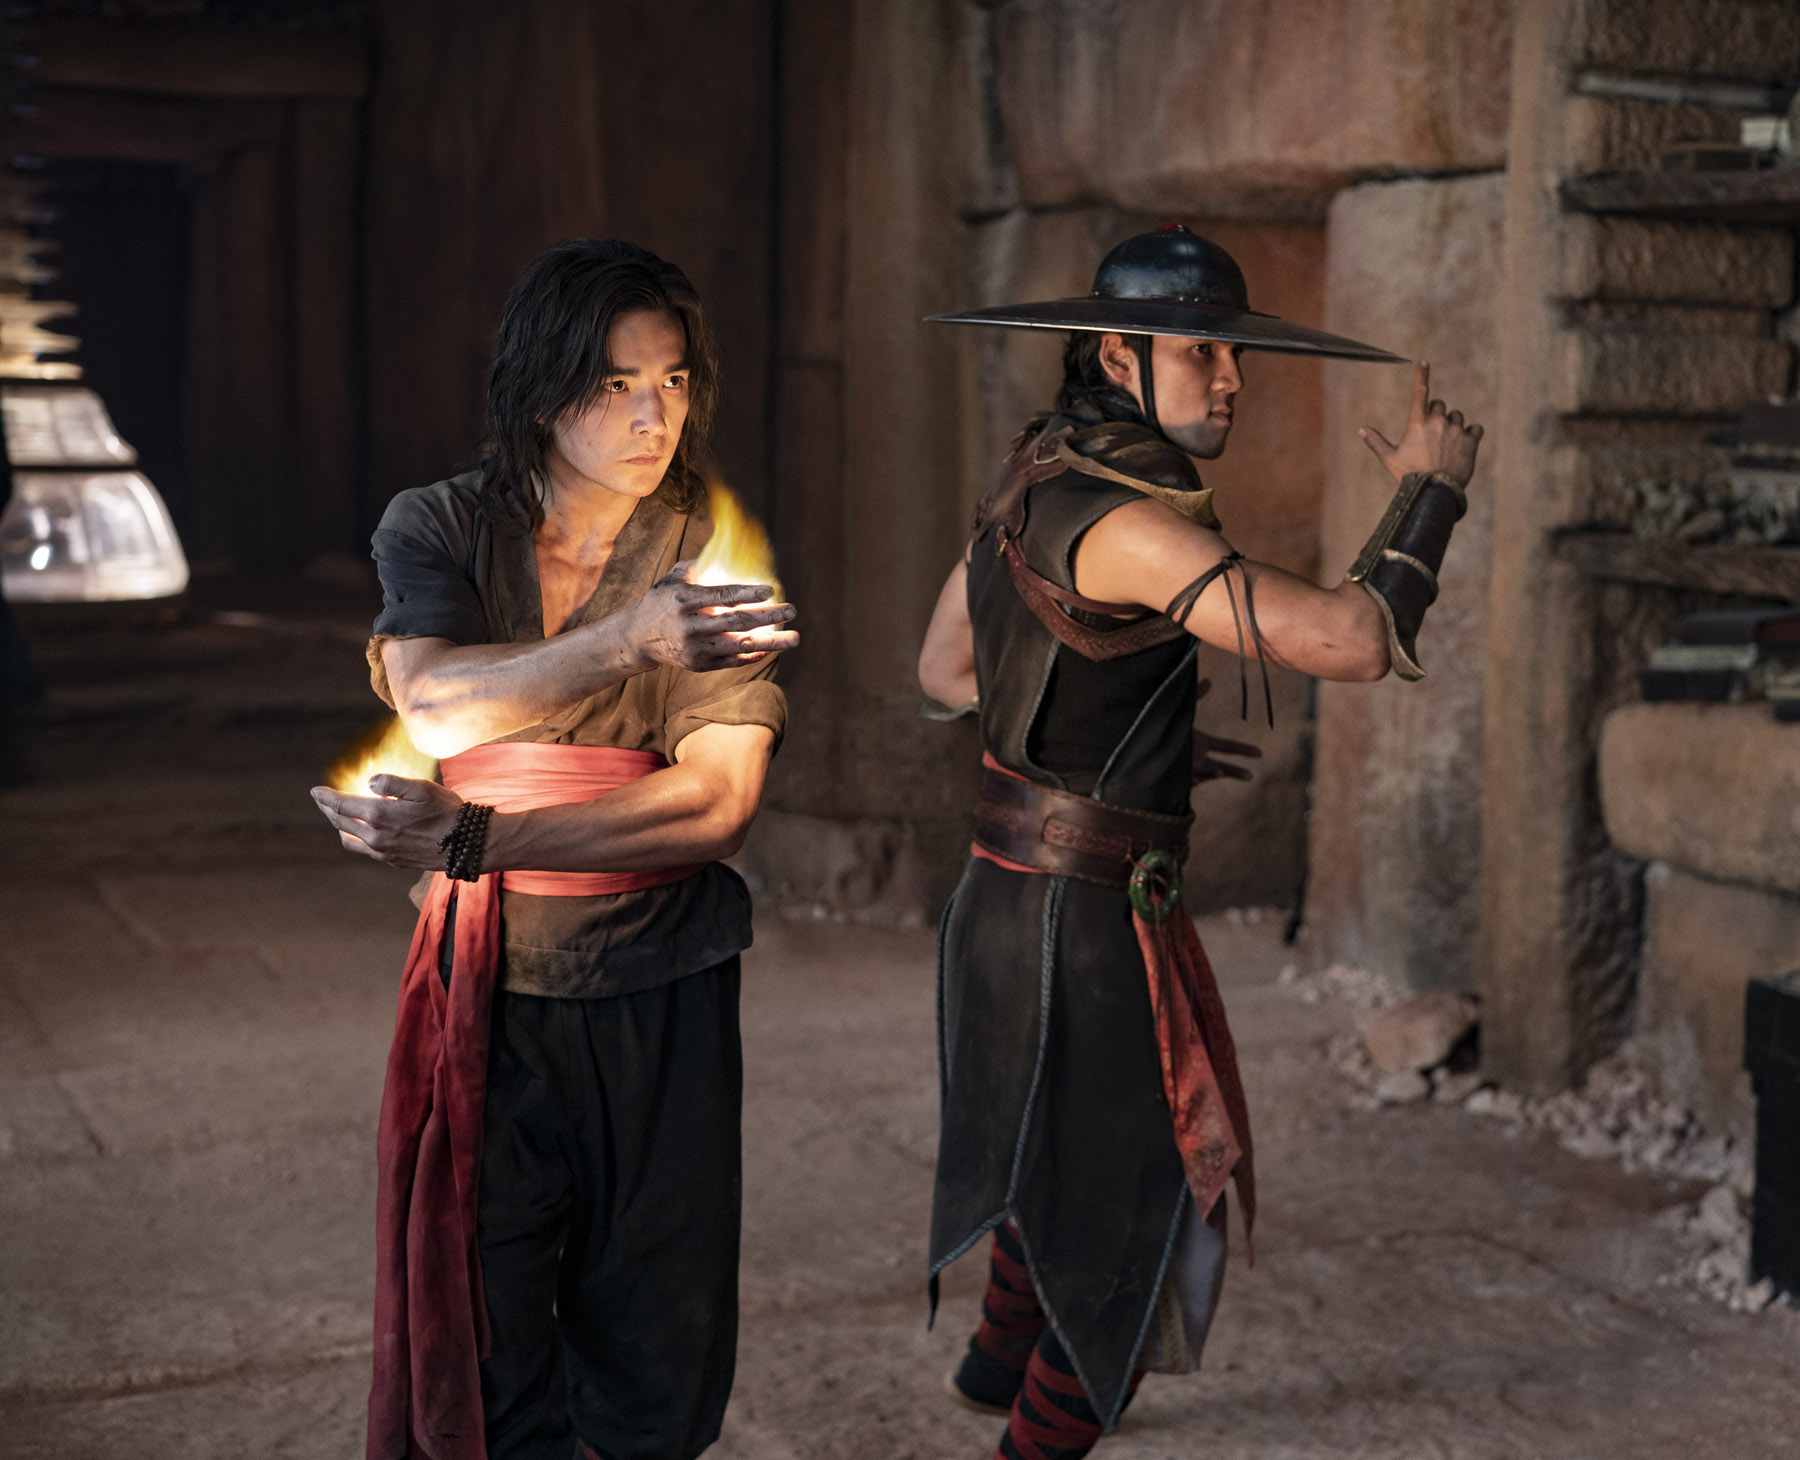 Mortal Kombat 2021 Movie: The First Look Images Are Here